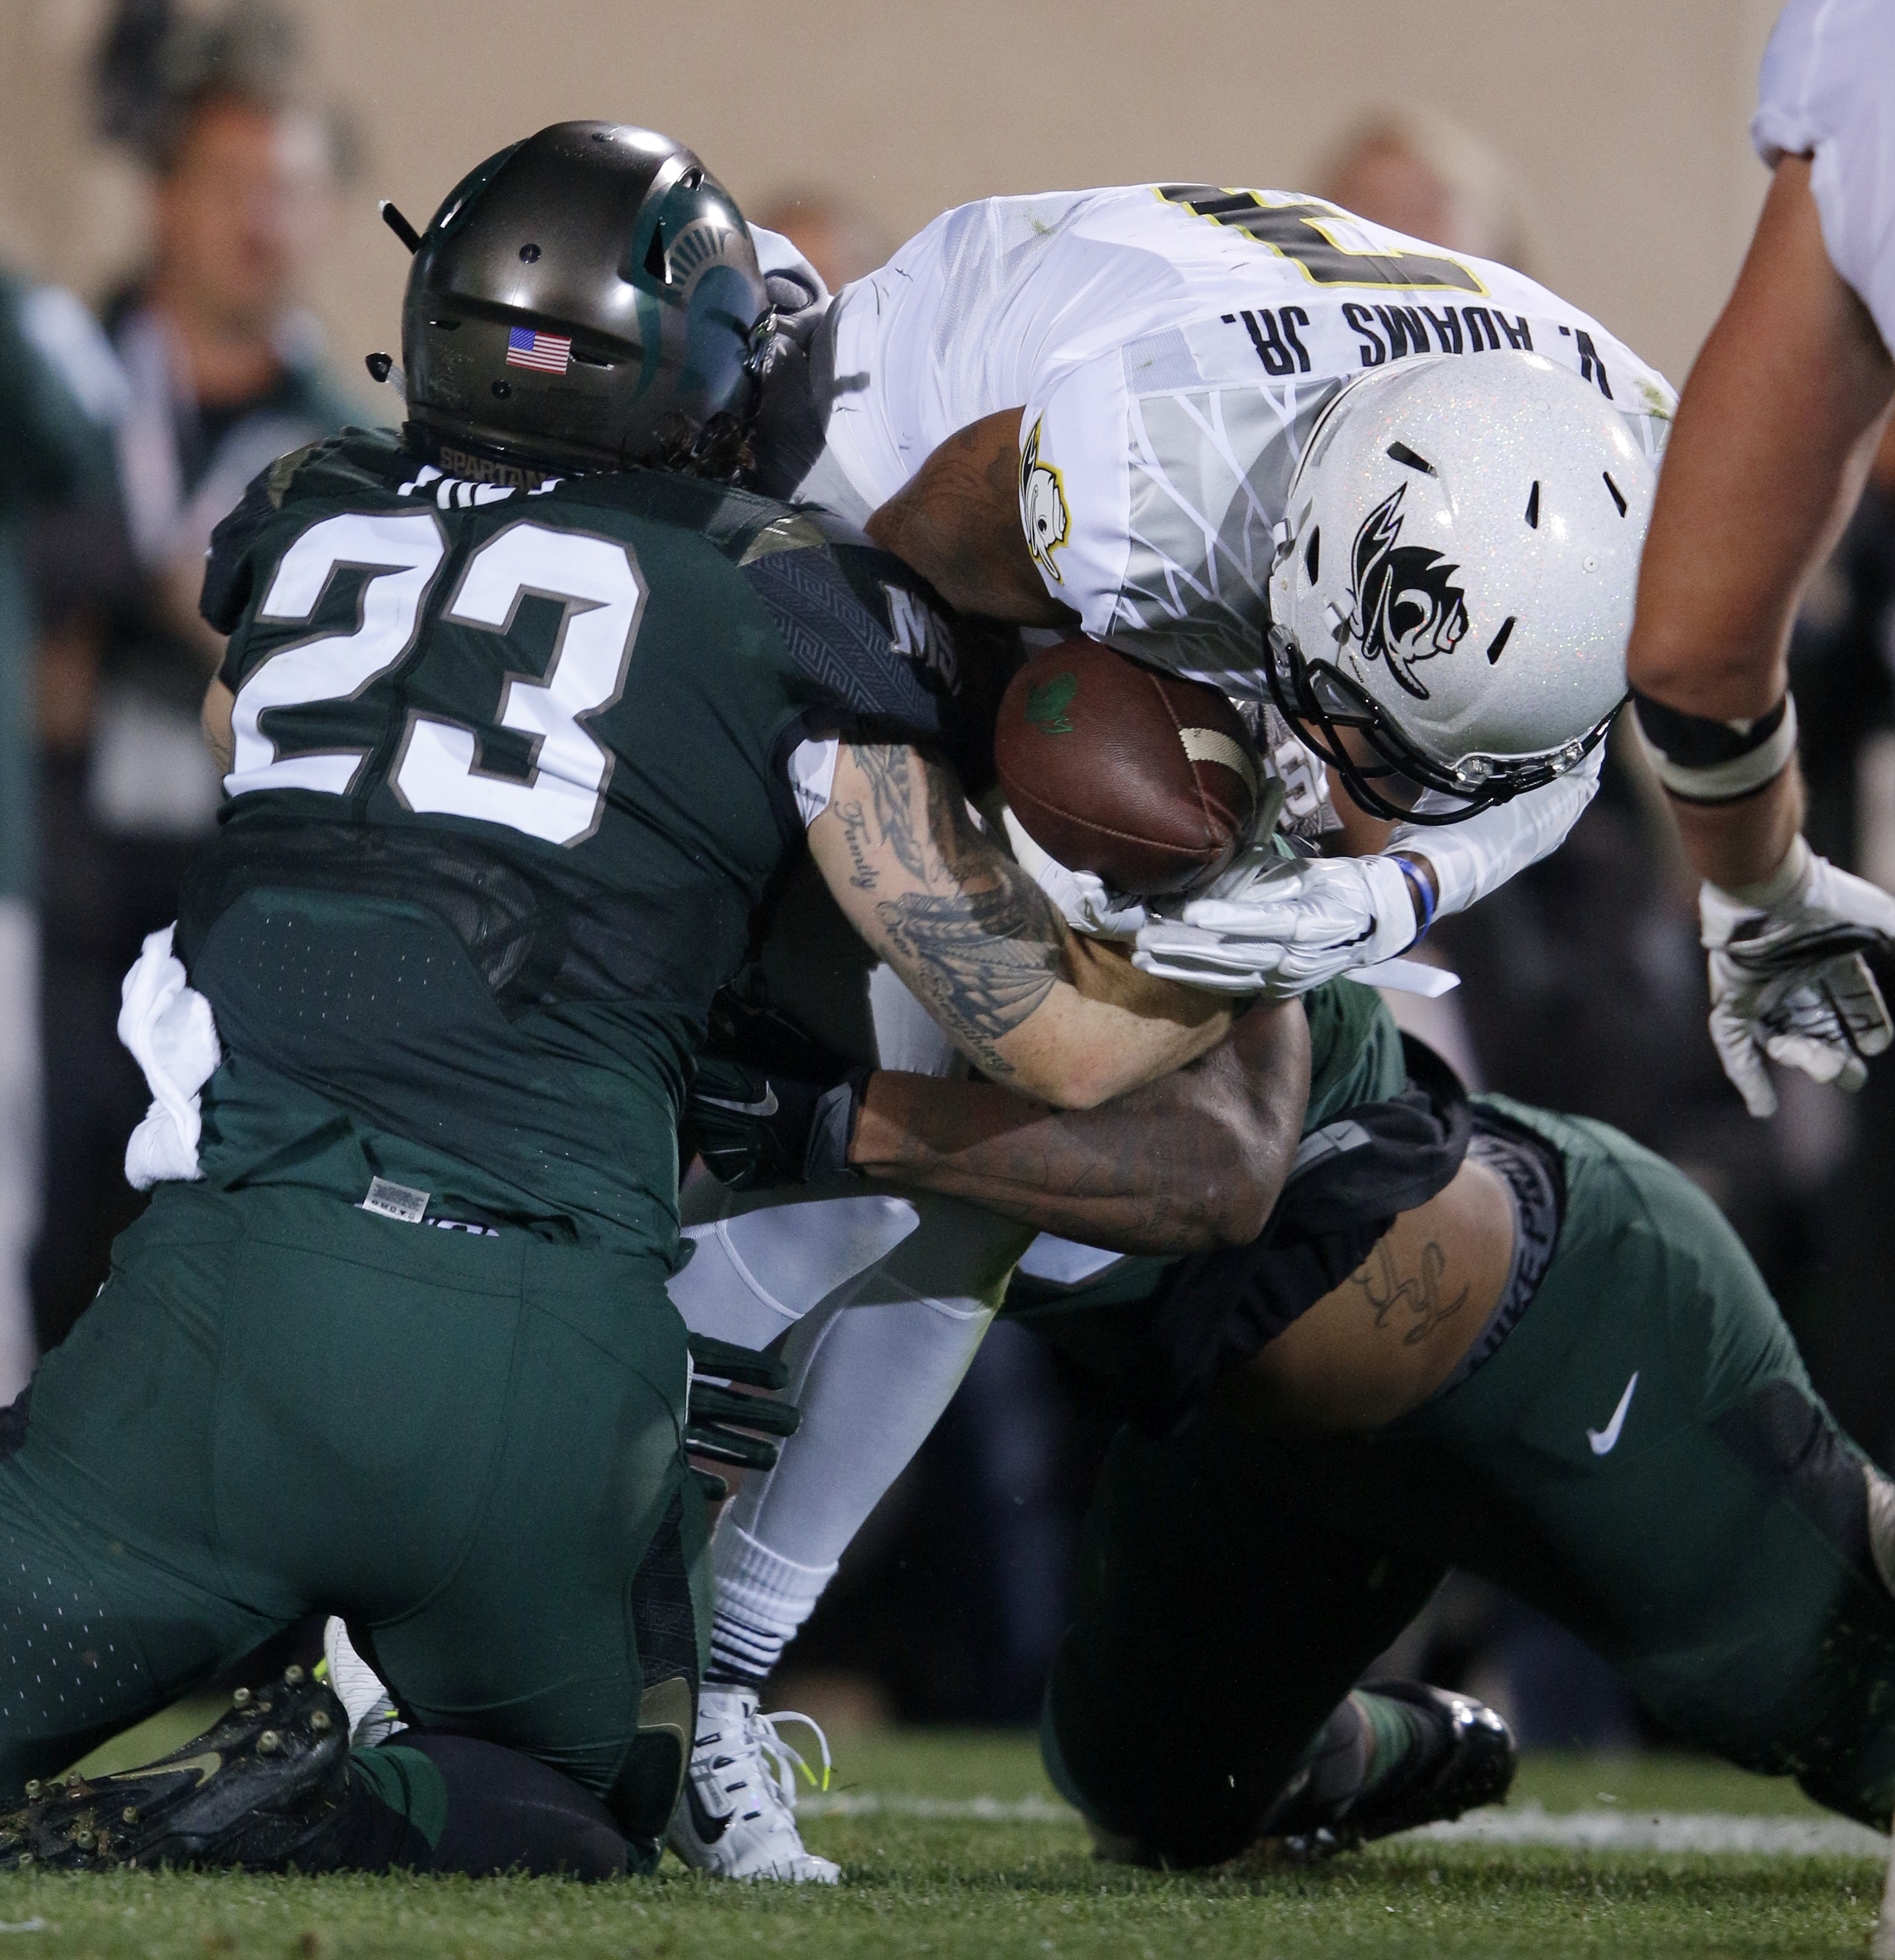 Oregon quarterback Vernon Adams Jr., center, is sacked by Michigan State's Chris Frey (23) and Demetrius Cooper, rear, during the first quarter of an NCAA college football game, Saturday, Sept. 12, 2015, in East Lansing, Mich. (AP Photo/Al Goldis)